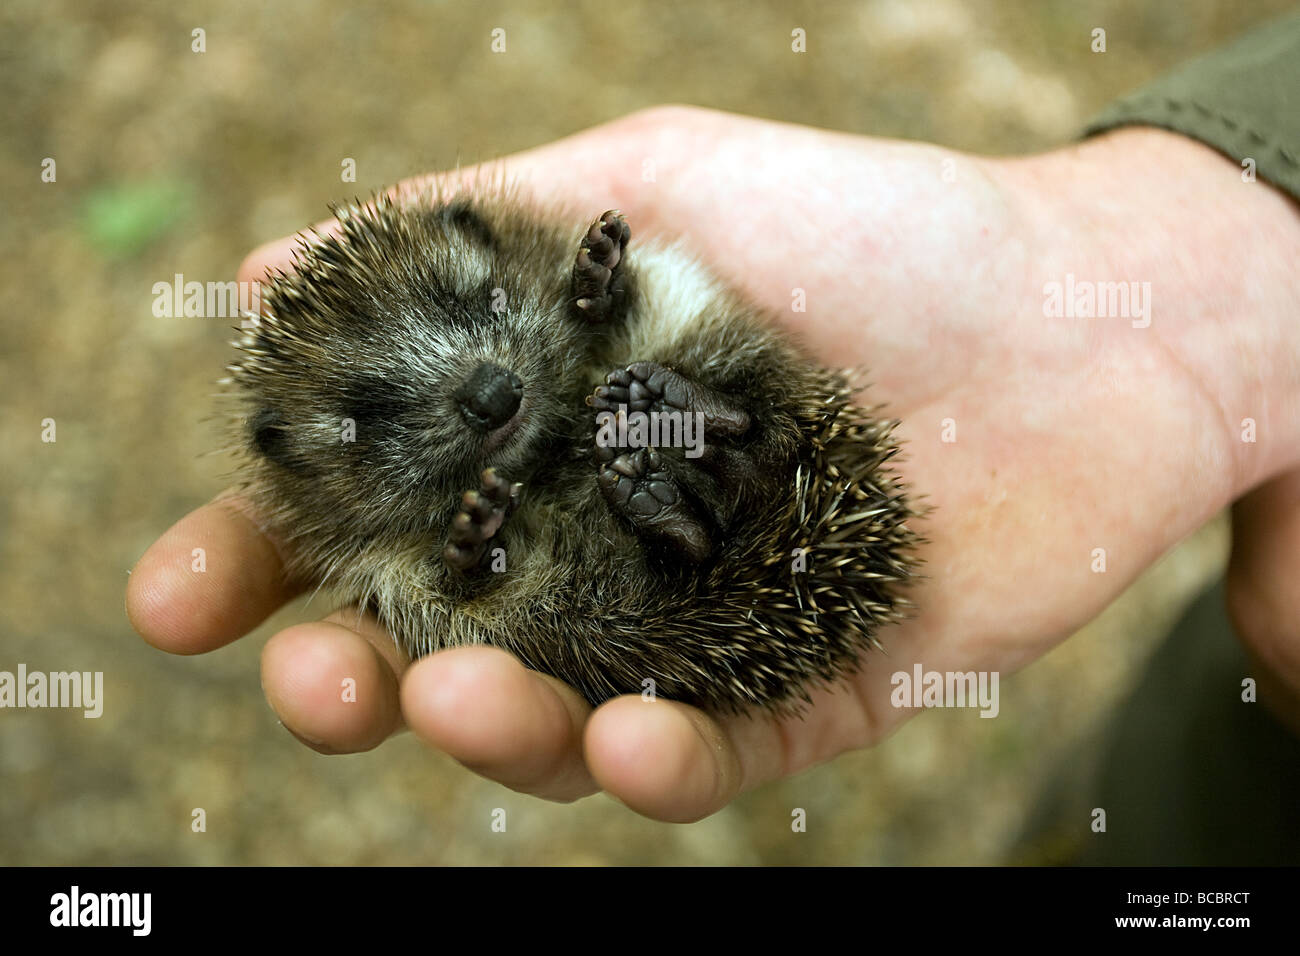 HEDGEHOG (Erinaceus europaeus) baby in the hands of a rescuer. Stock Photo